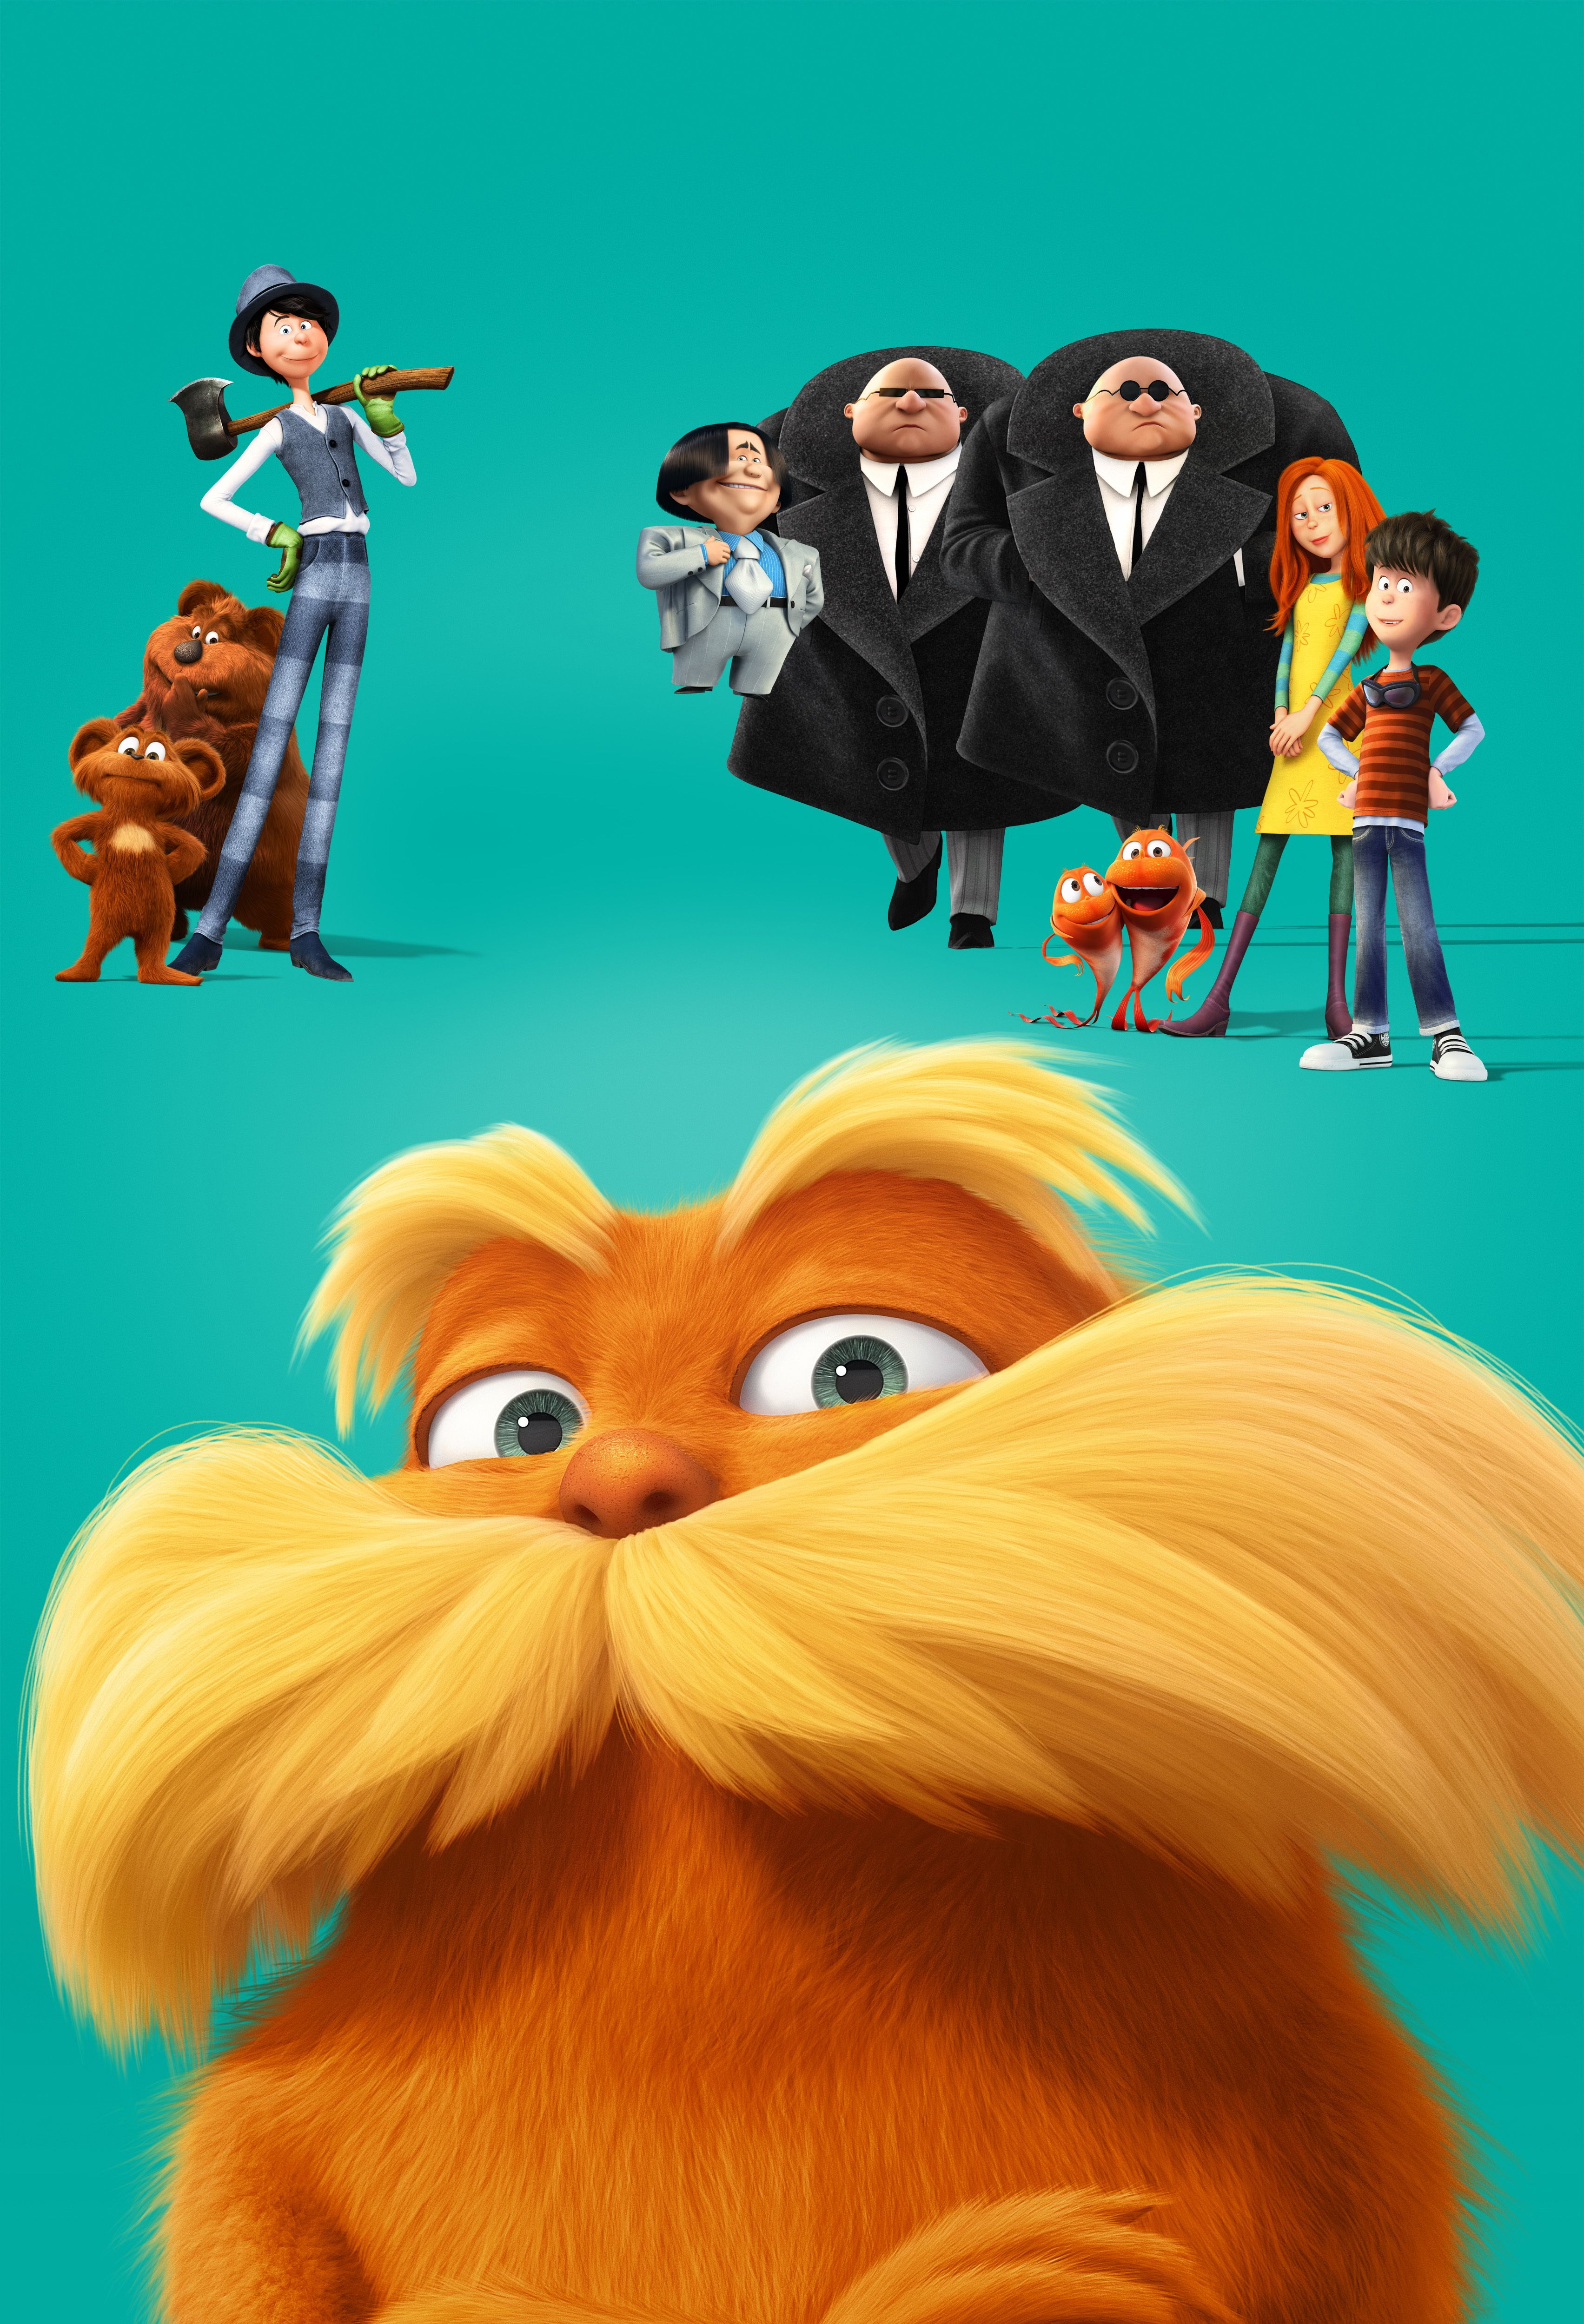 Pin By The Carolina Trader On Animation The Lorax The Lorax Full Movie Full Movies Online Free